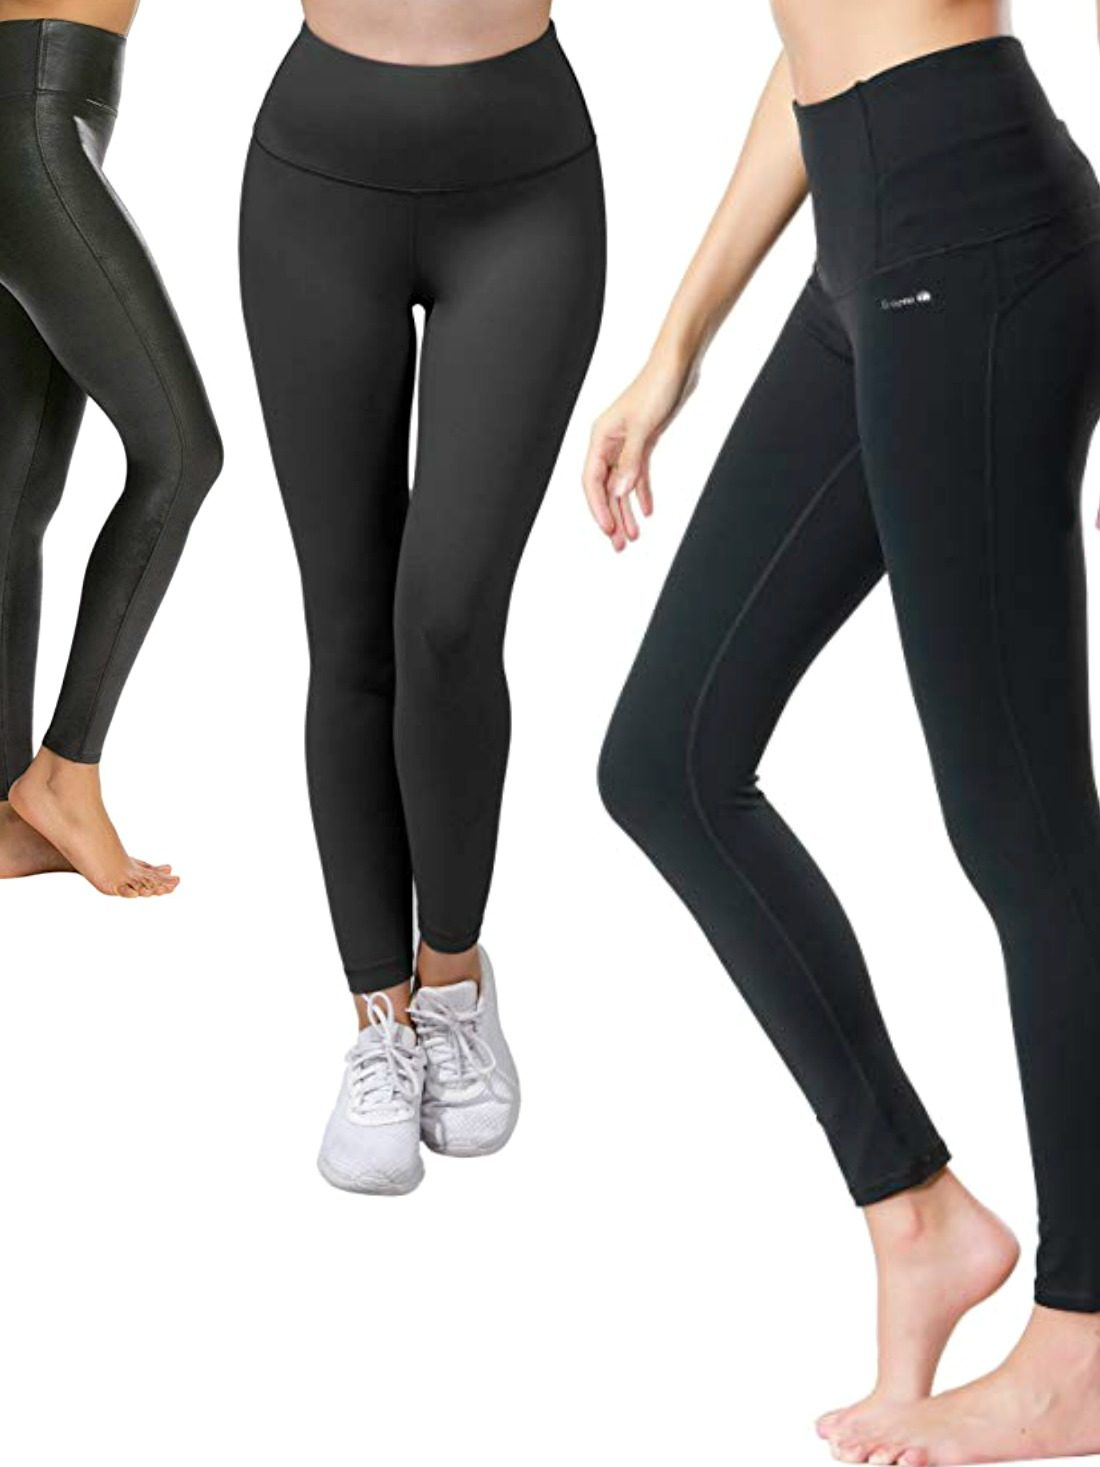 Our list of the best tummy control leggings will sort all your tricky areas out. They're everything, your ordinary activewear is not!